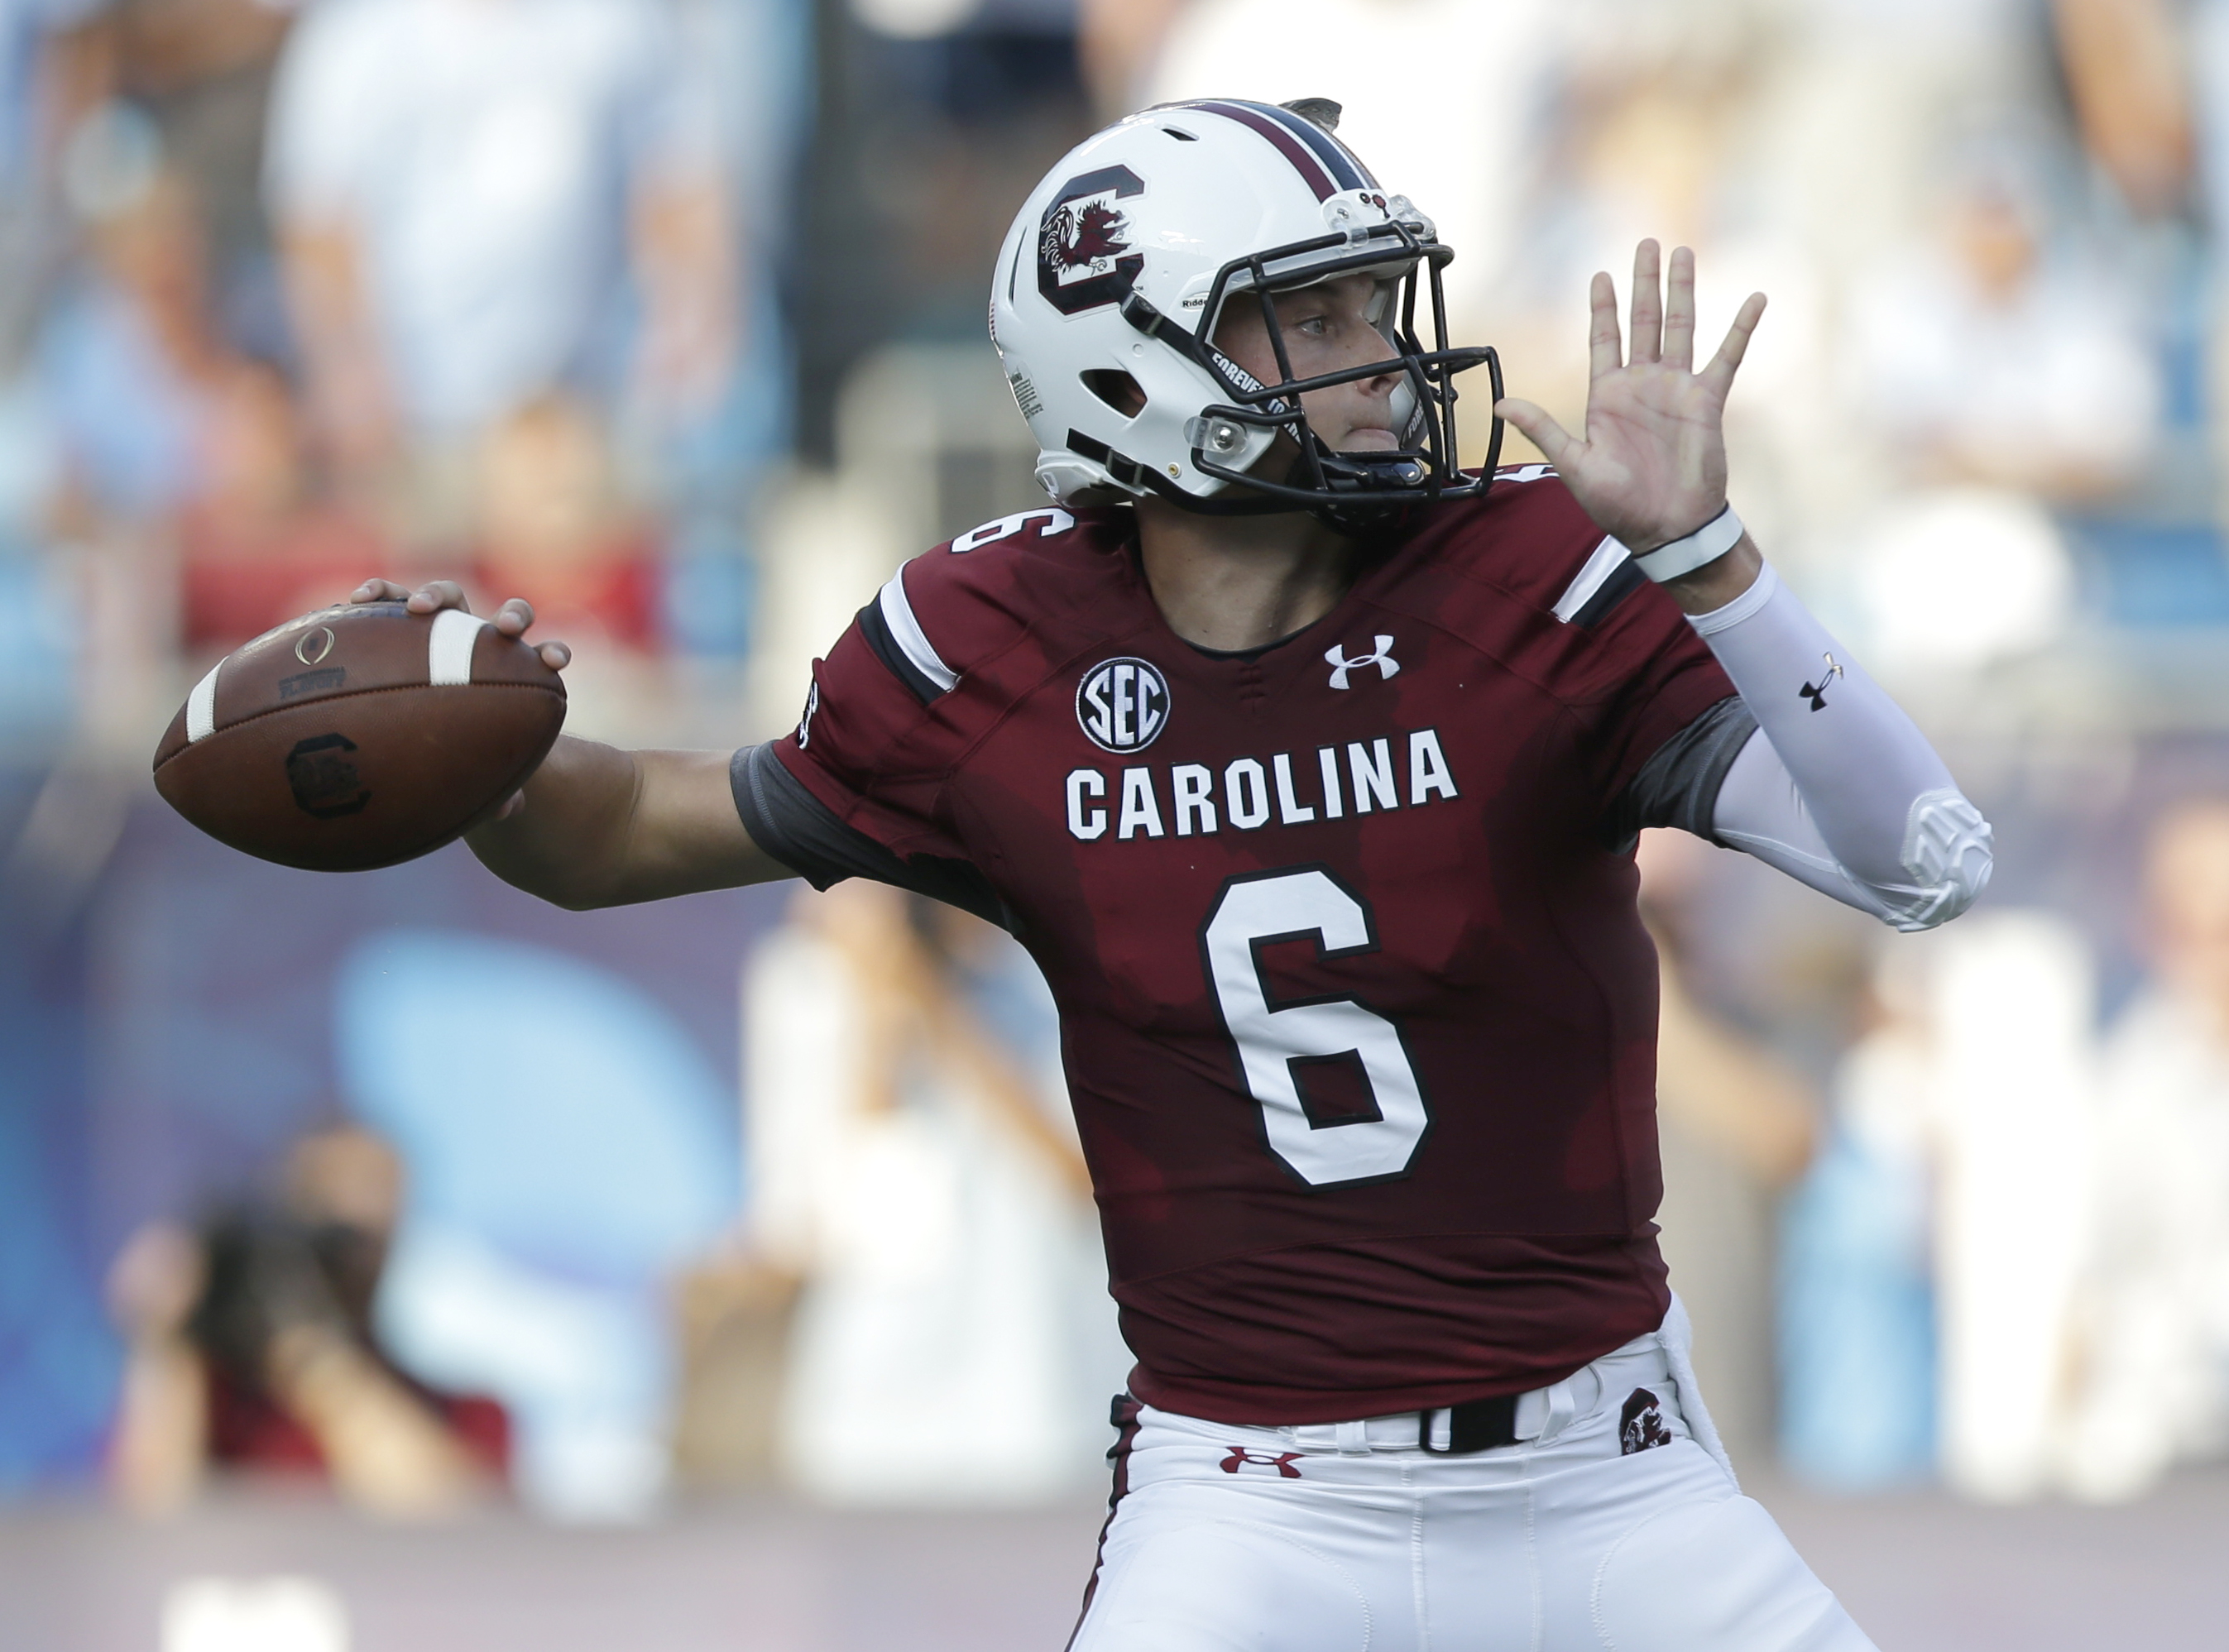 South Carolina's Connor Mitch looks to pass against North Carolina in the first half of an NCAA college football game in Charlotte, N.C., Thursday, Sept. 3, 2015. (AP Photo/Chuck Burton)